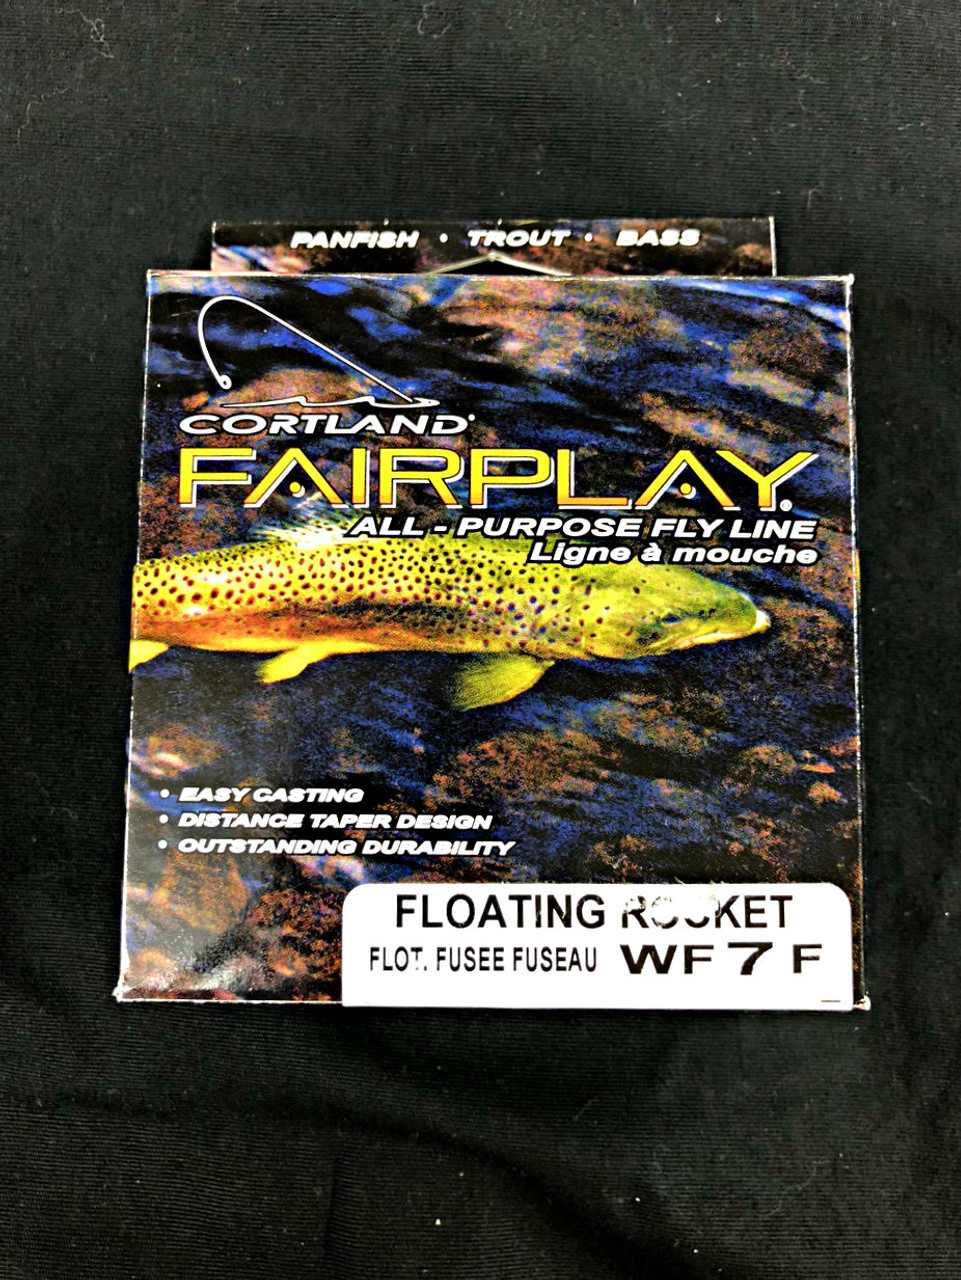 Cortland Fairplay All-Purpose Fly Line - Floating Rocket Taper